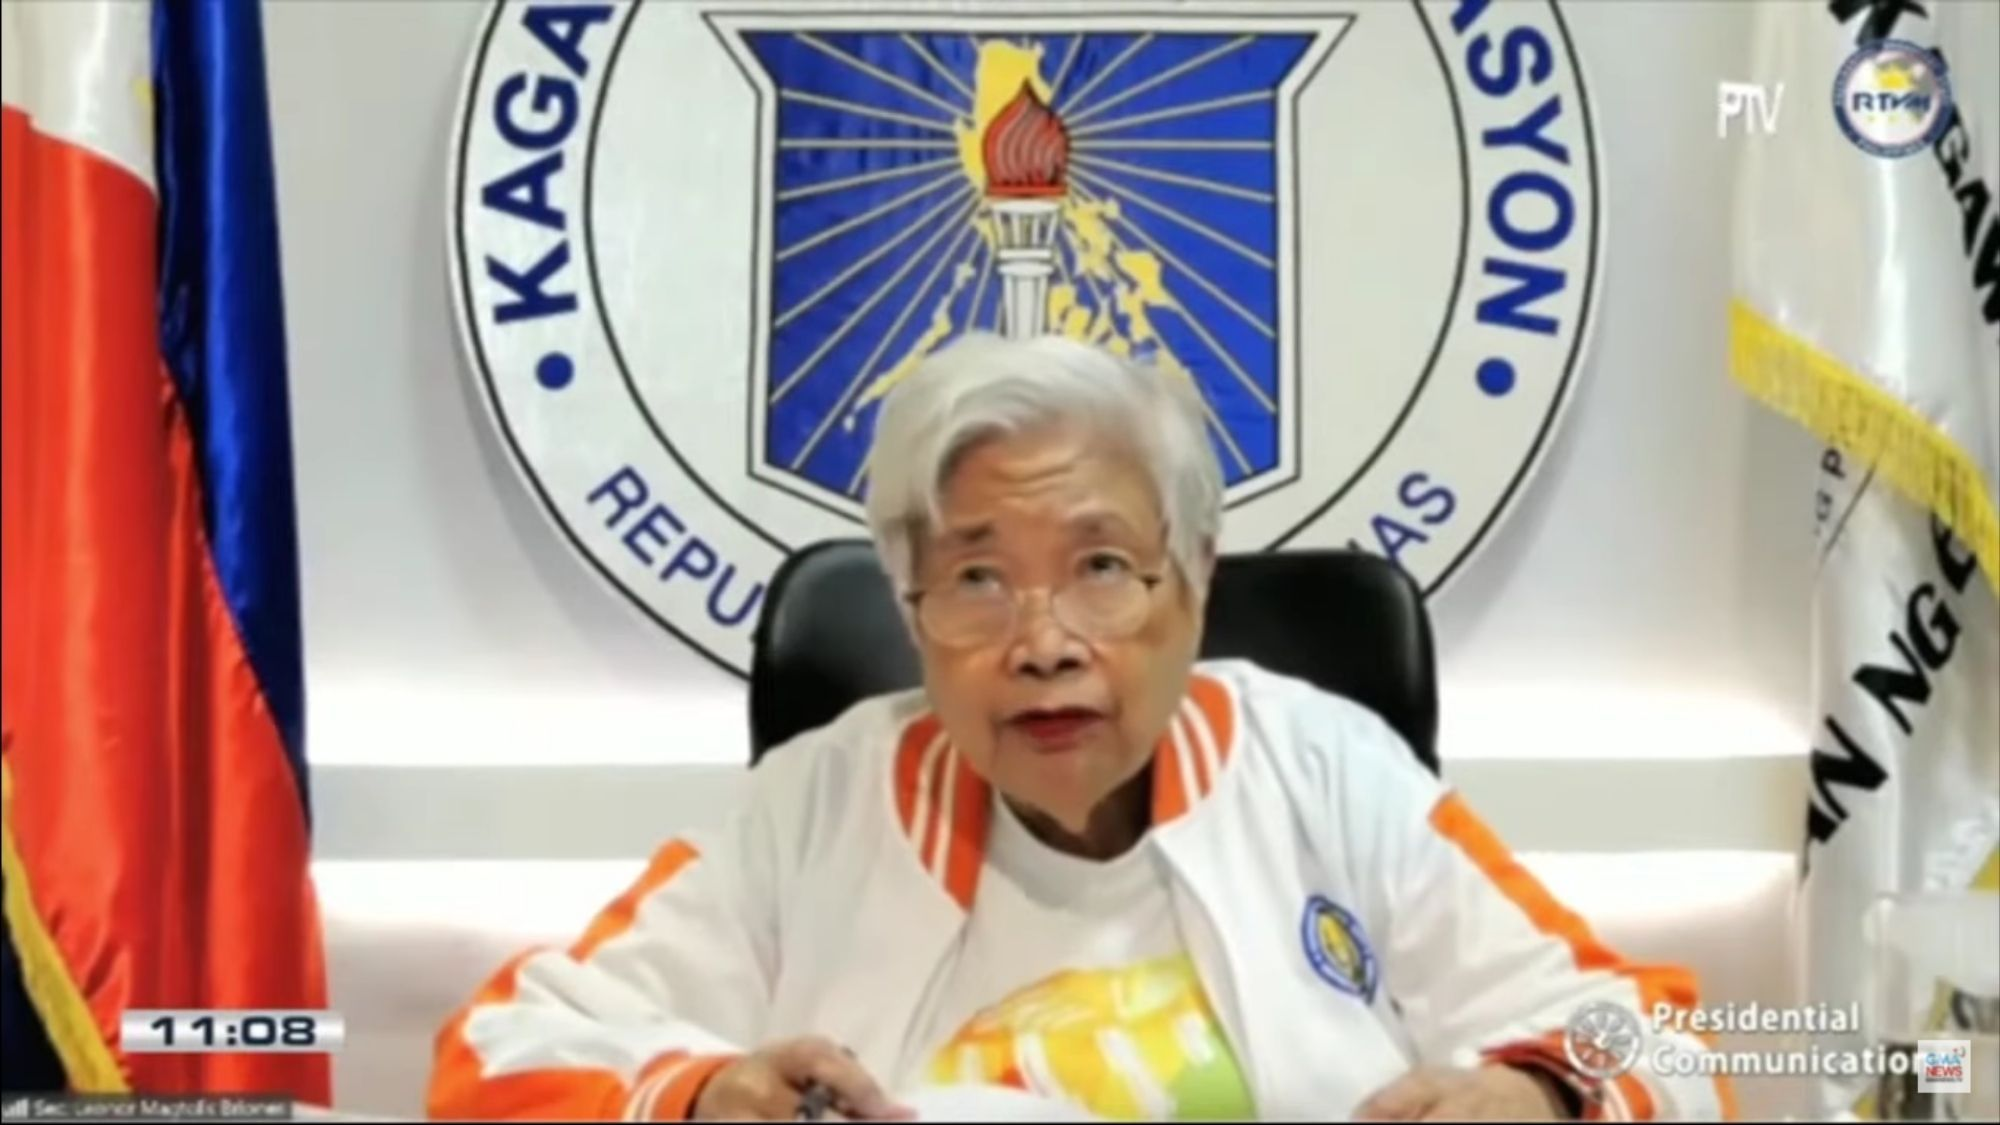 Whose fault it is Briones disses Robredo on crisis in education comments captured from GMA News, Youtube